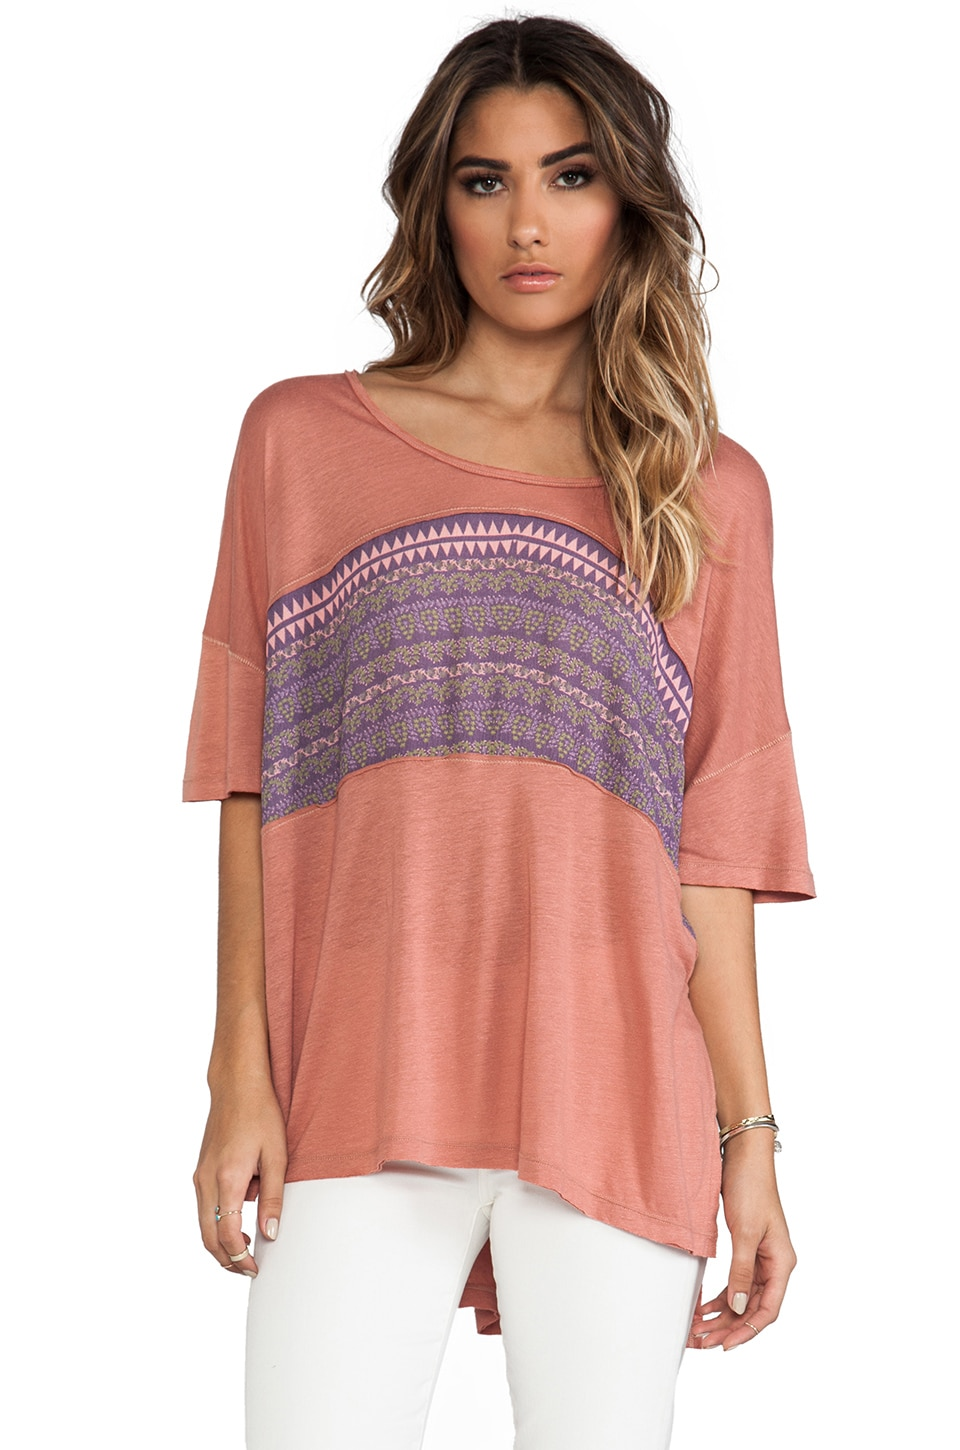 Free People Stars Of Orion Tee in Summer Sand Combo